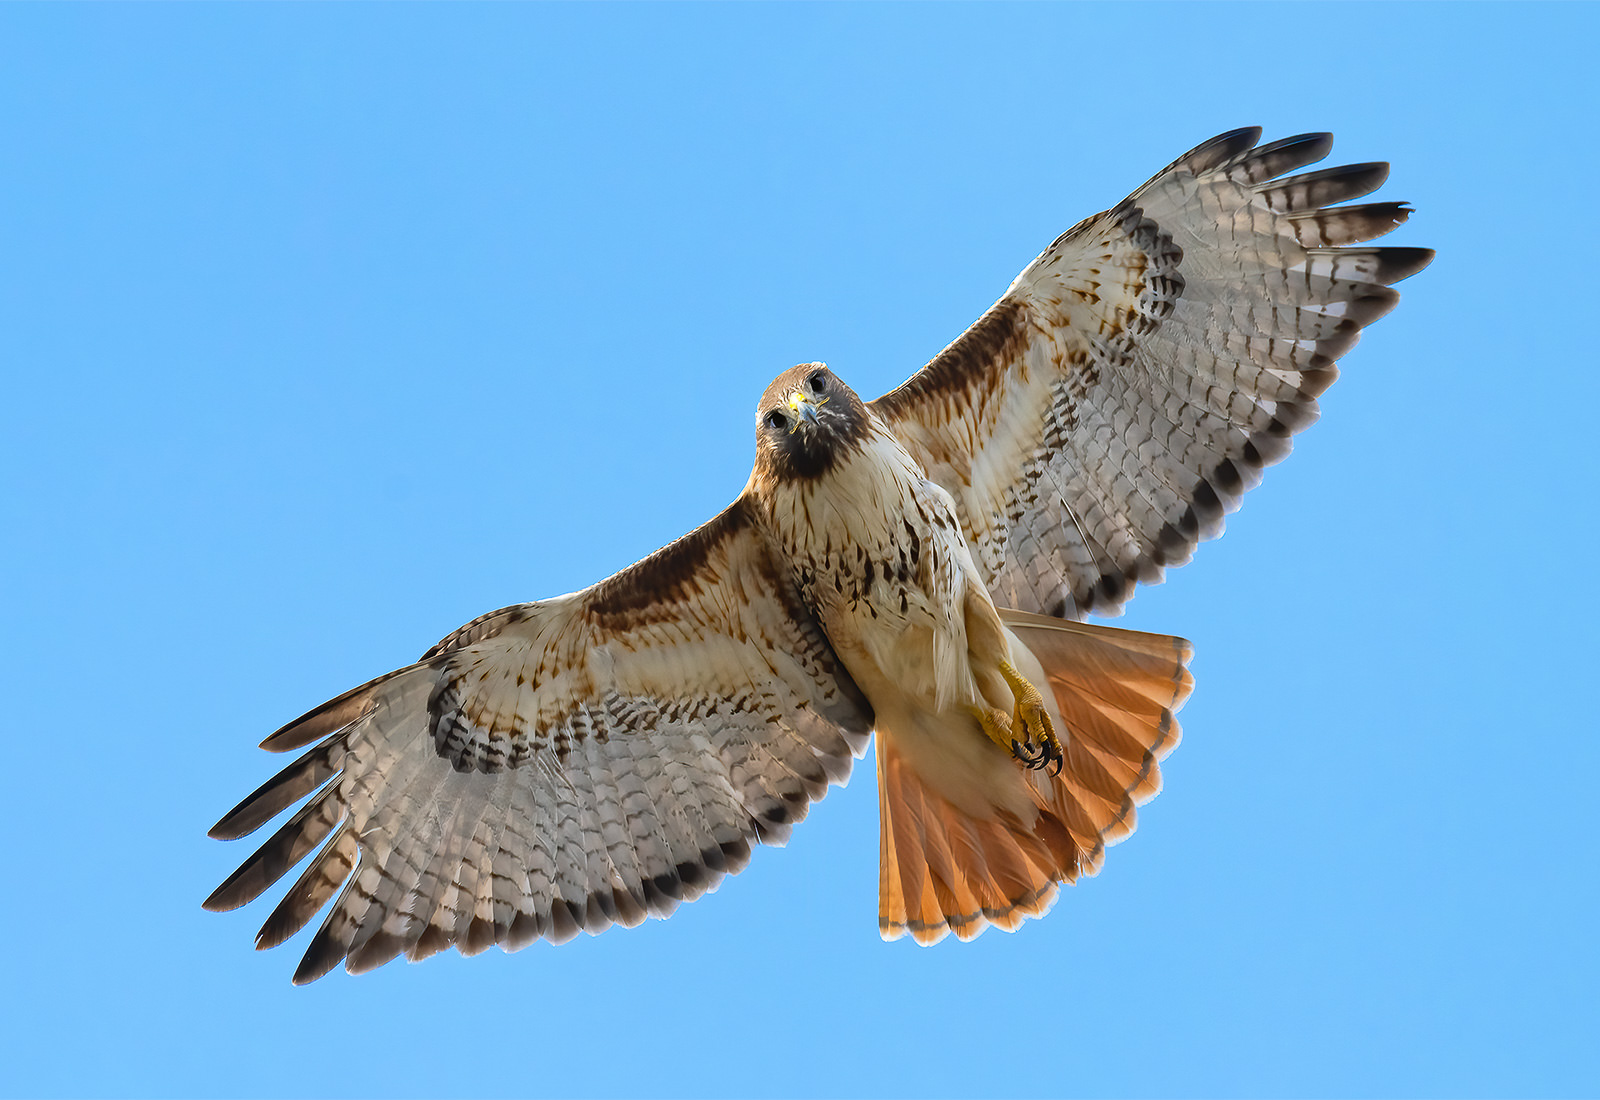 Red-tailed hawk looking down while in flight